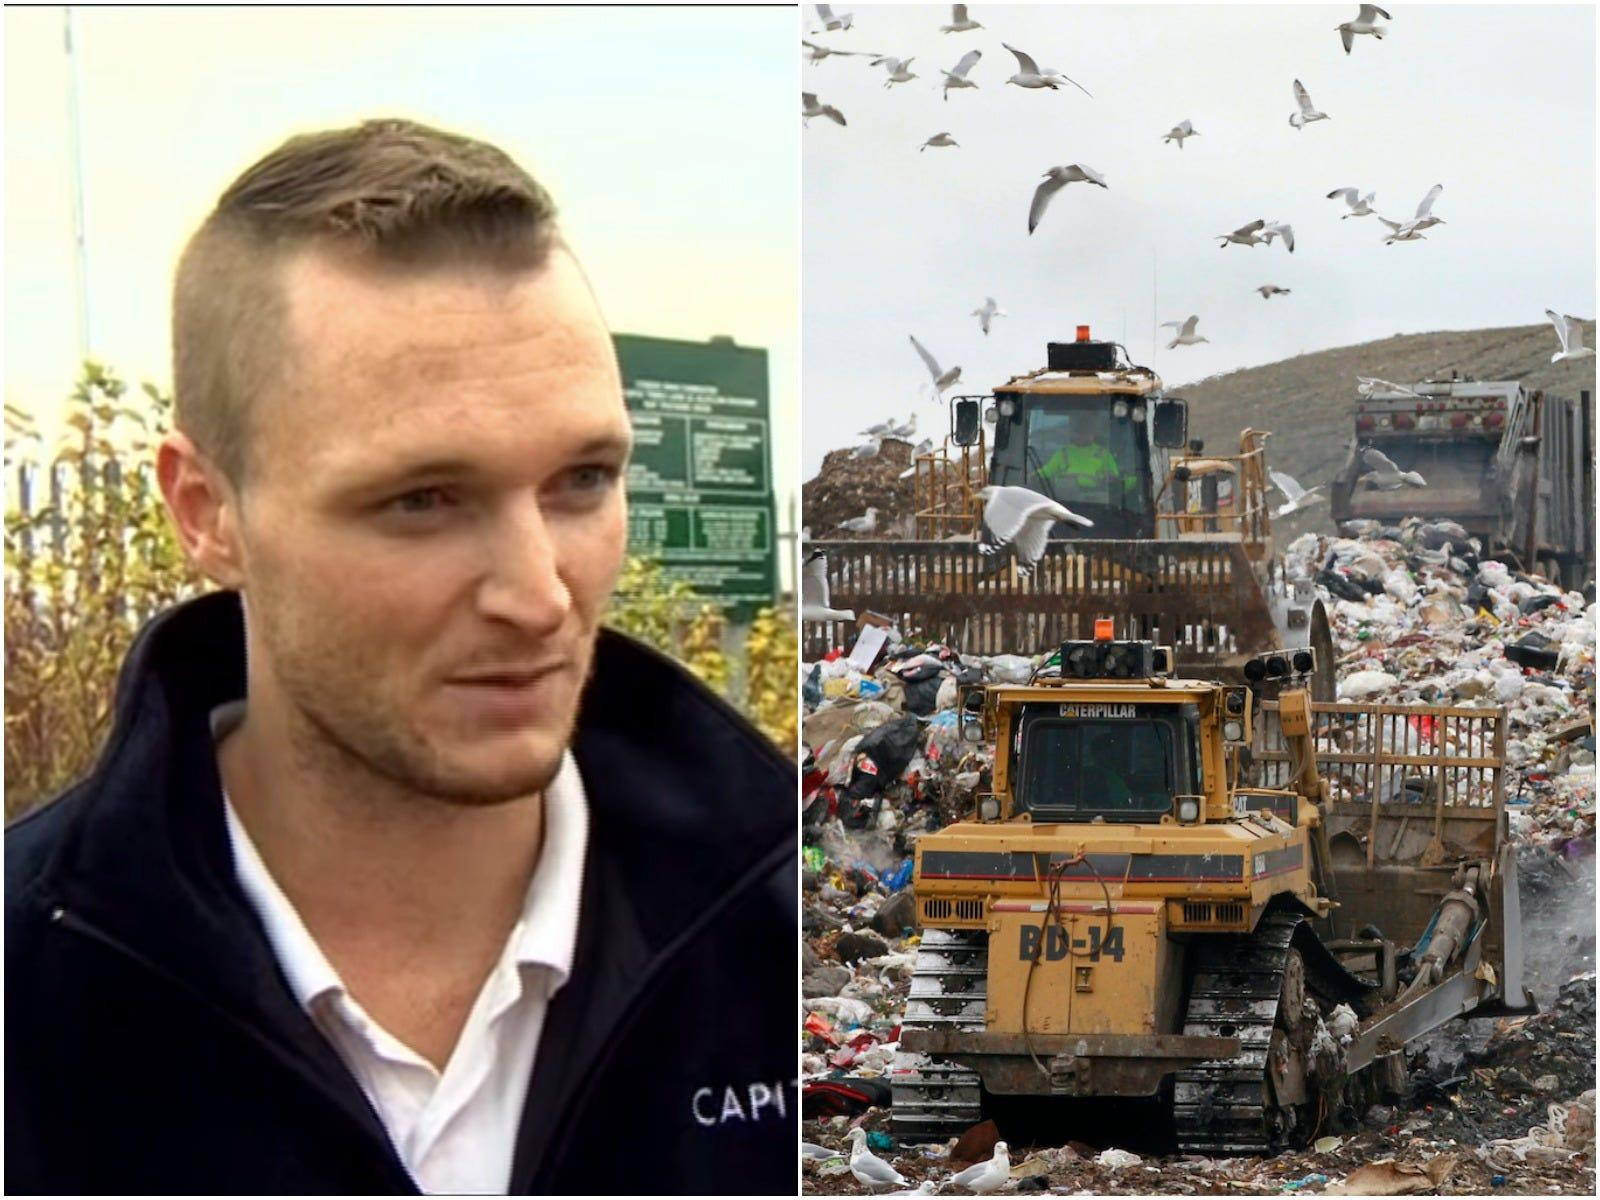 A man who says he threw away a hard drive loaded with 7,500 bitcoin in 2013 is offering his council $70 million to dig it up from the city dump